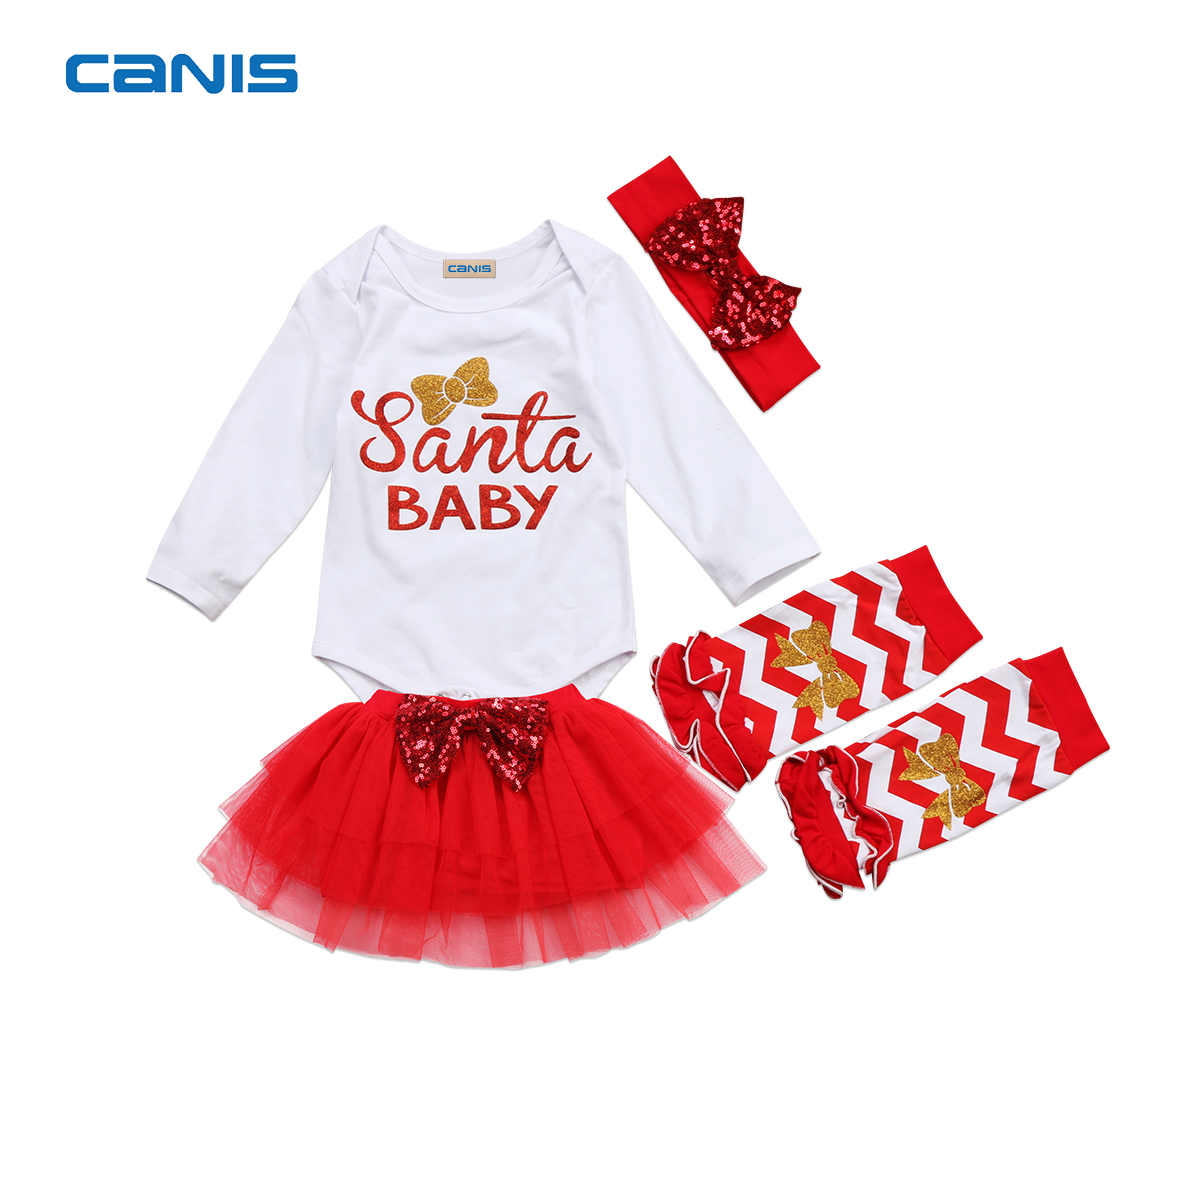 2017 Brand New 4 Pcs Newborn Toddler Infant Baby Girl Santa Romper Tulle Skirt Leg Warmer Outfits Red Xmas Set Christmas Clothes 2017 brand new 3pcs set newborn toddler infant baby girl boy clothes romper long sleeve shirt tops pants hat santa candy outfits